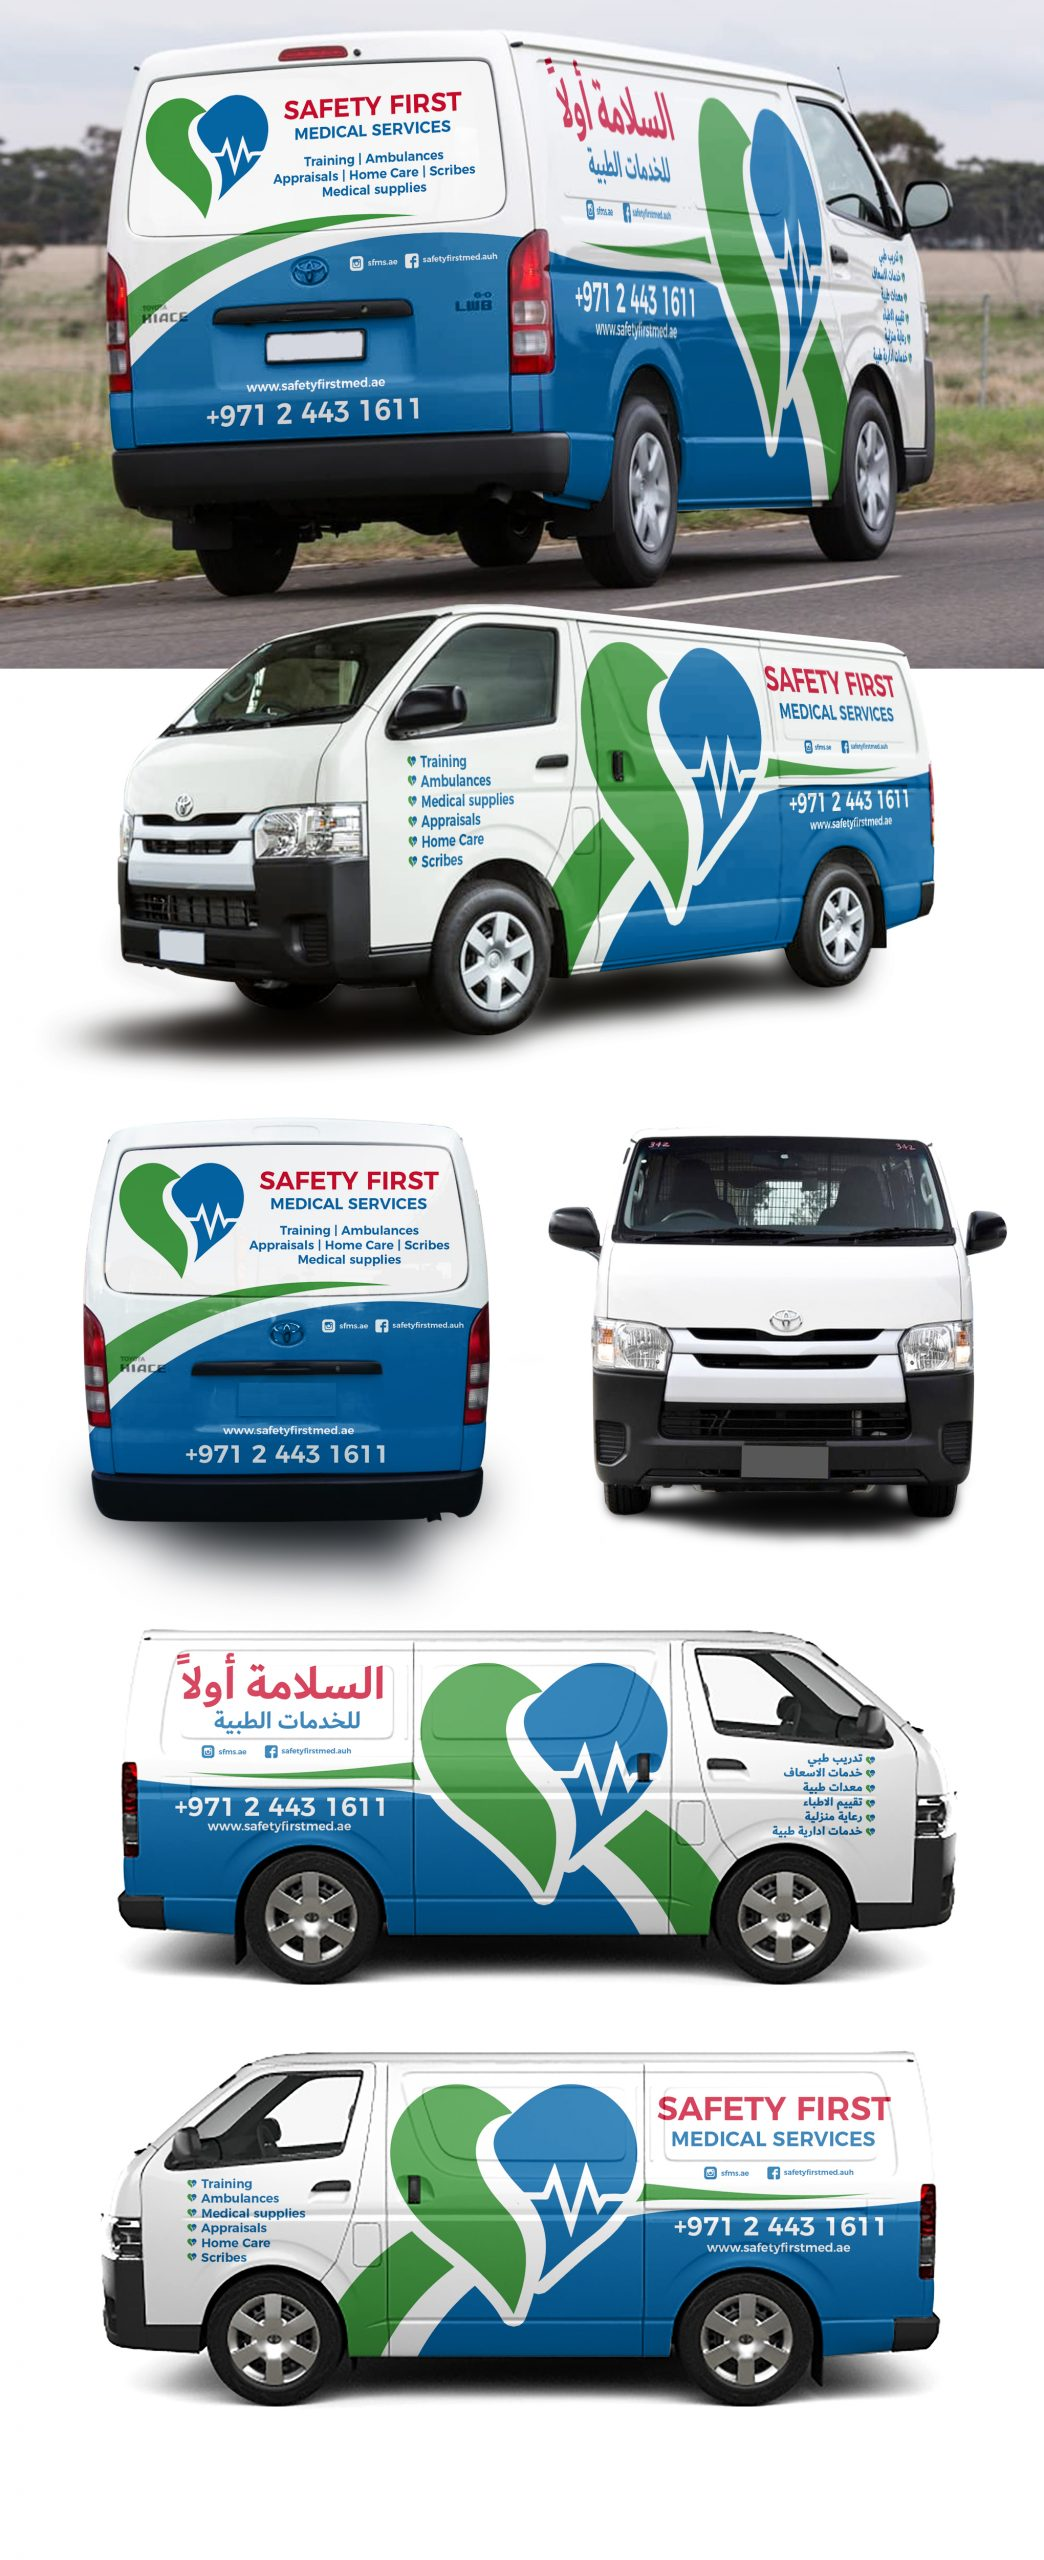 Safety First Medical Services wrap mockup